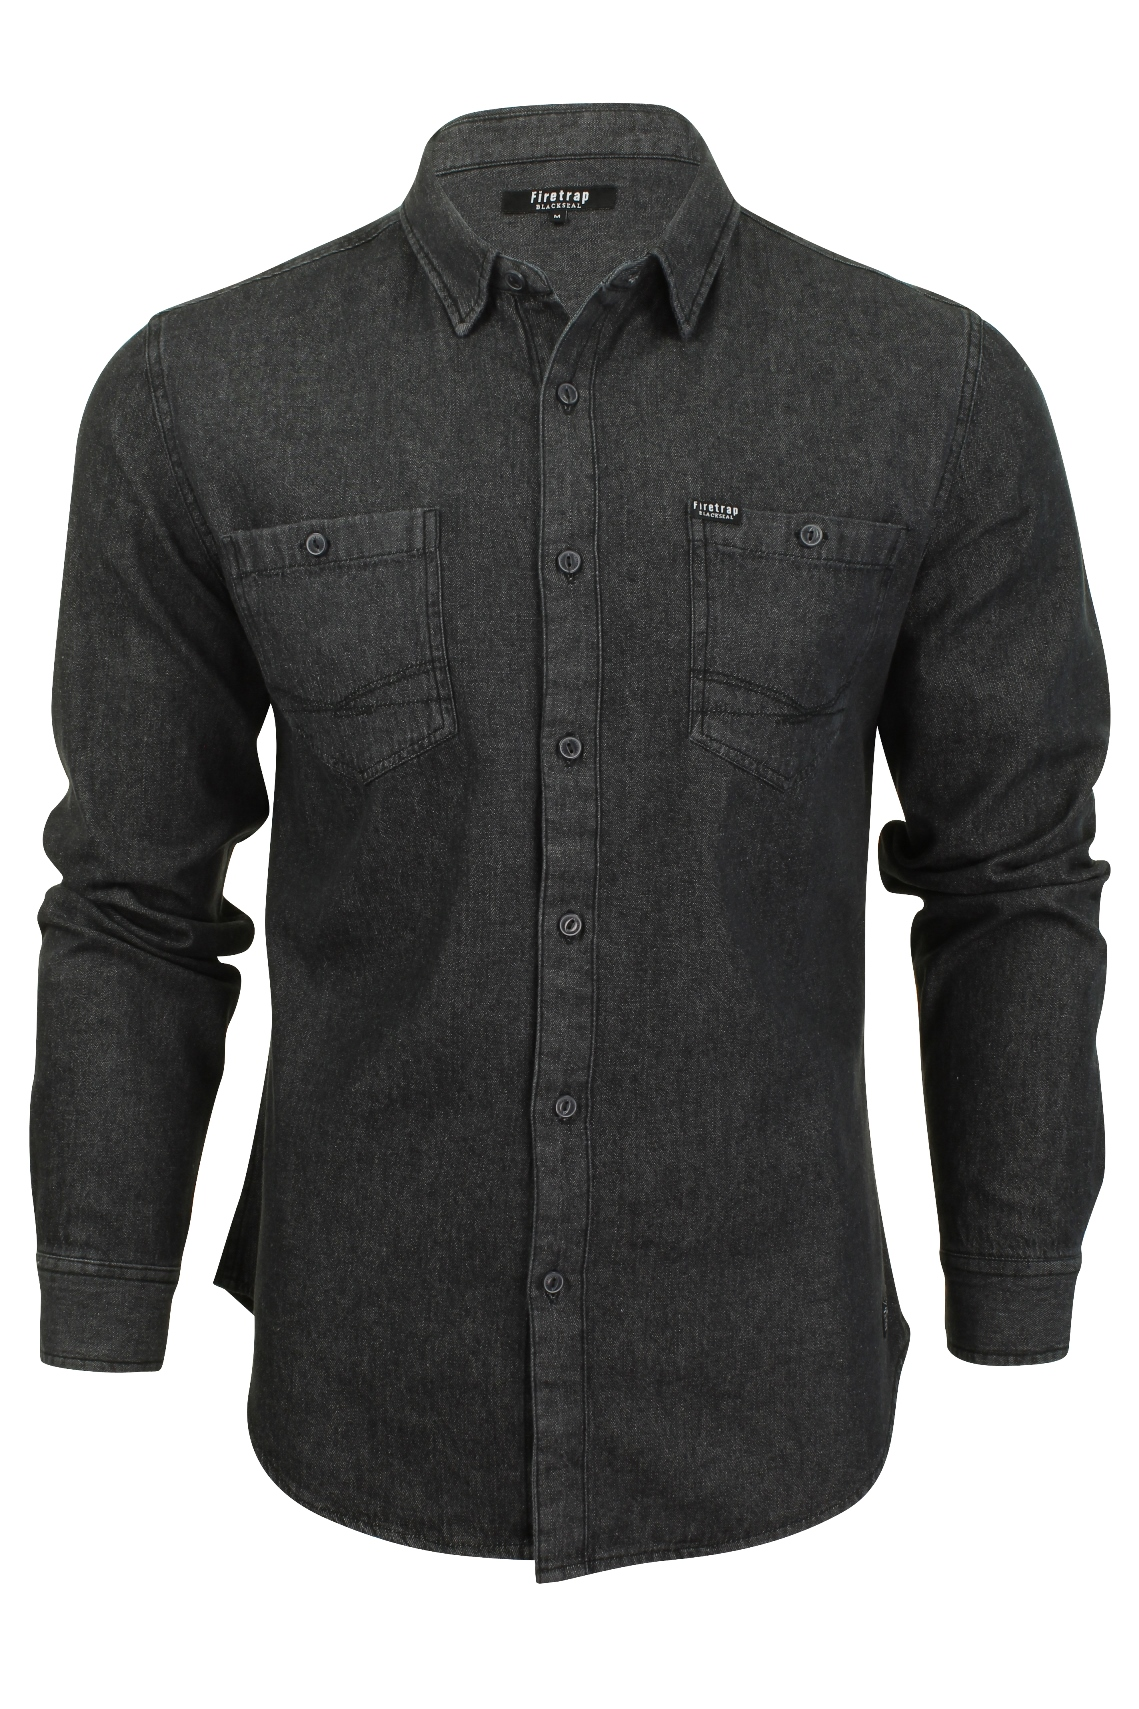 Find great deals on eBay for black denim shirt. Shop with confidence.